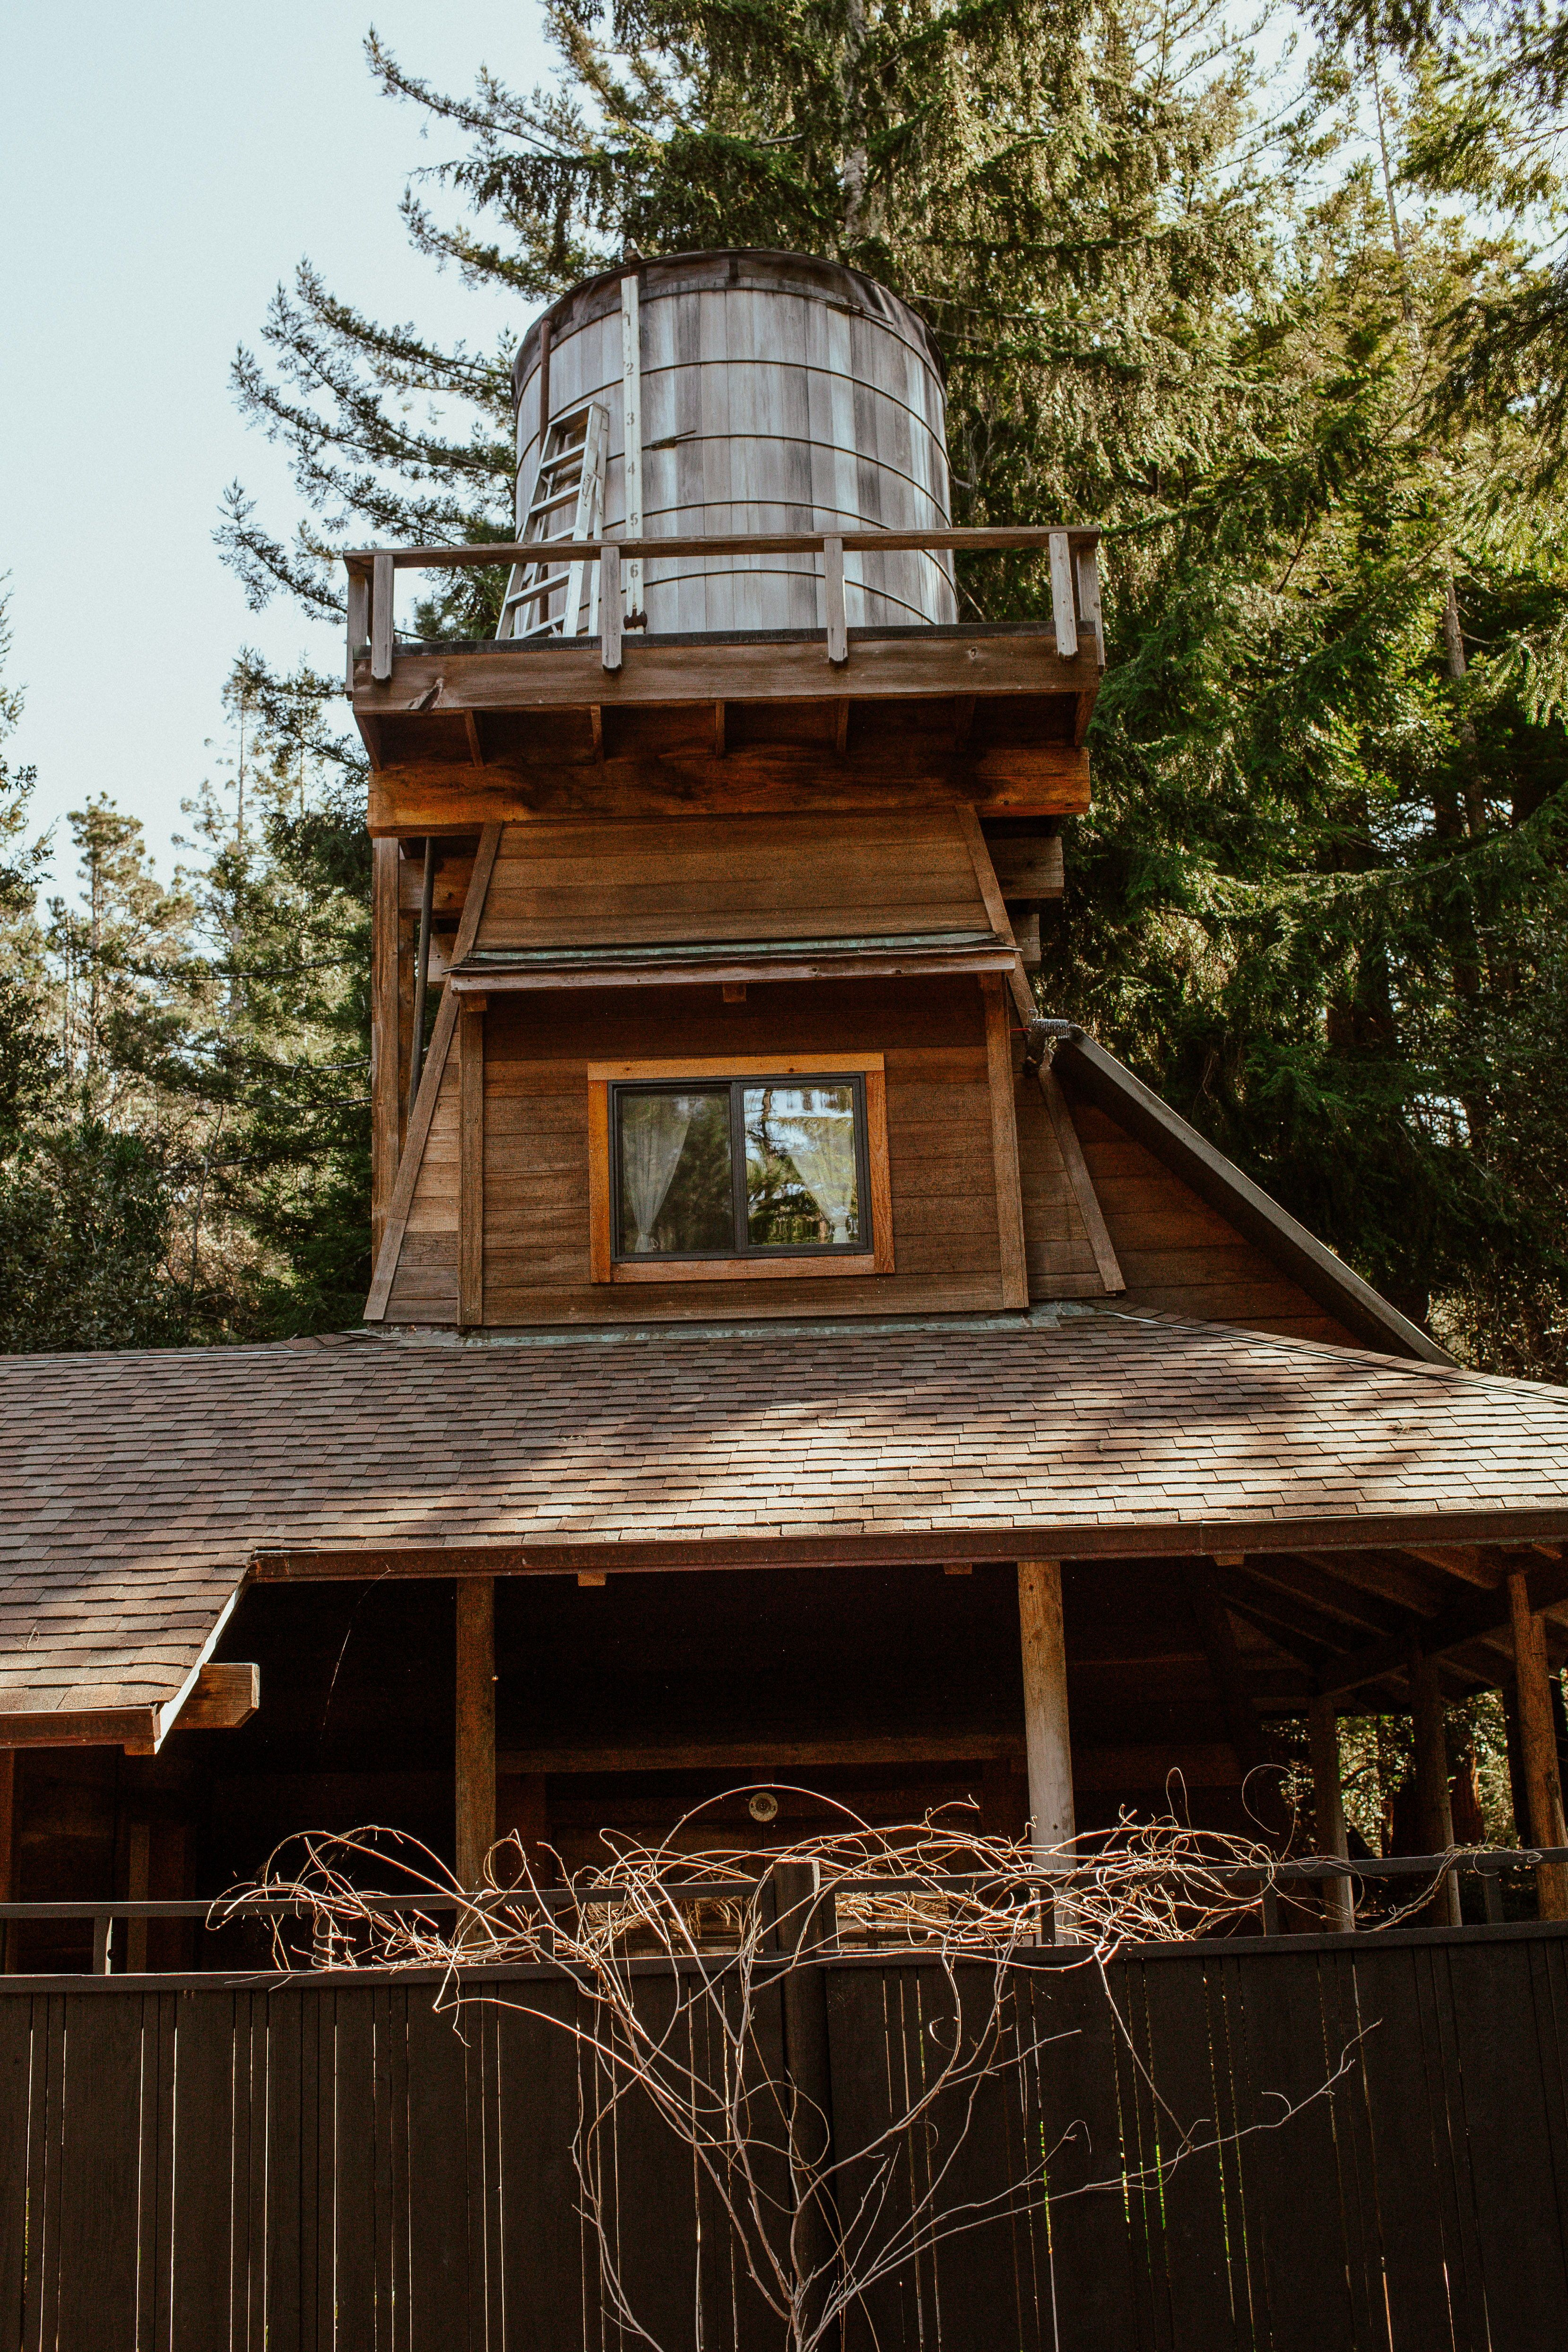 A Whimsical OffTheGrid Water Tower Airbnb in Mendocino